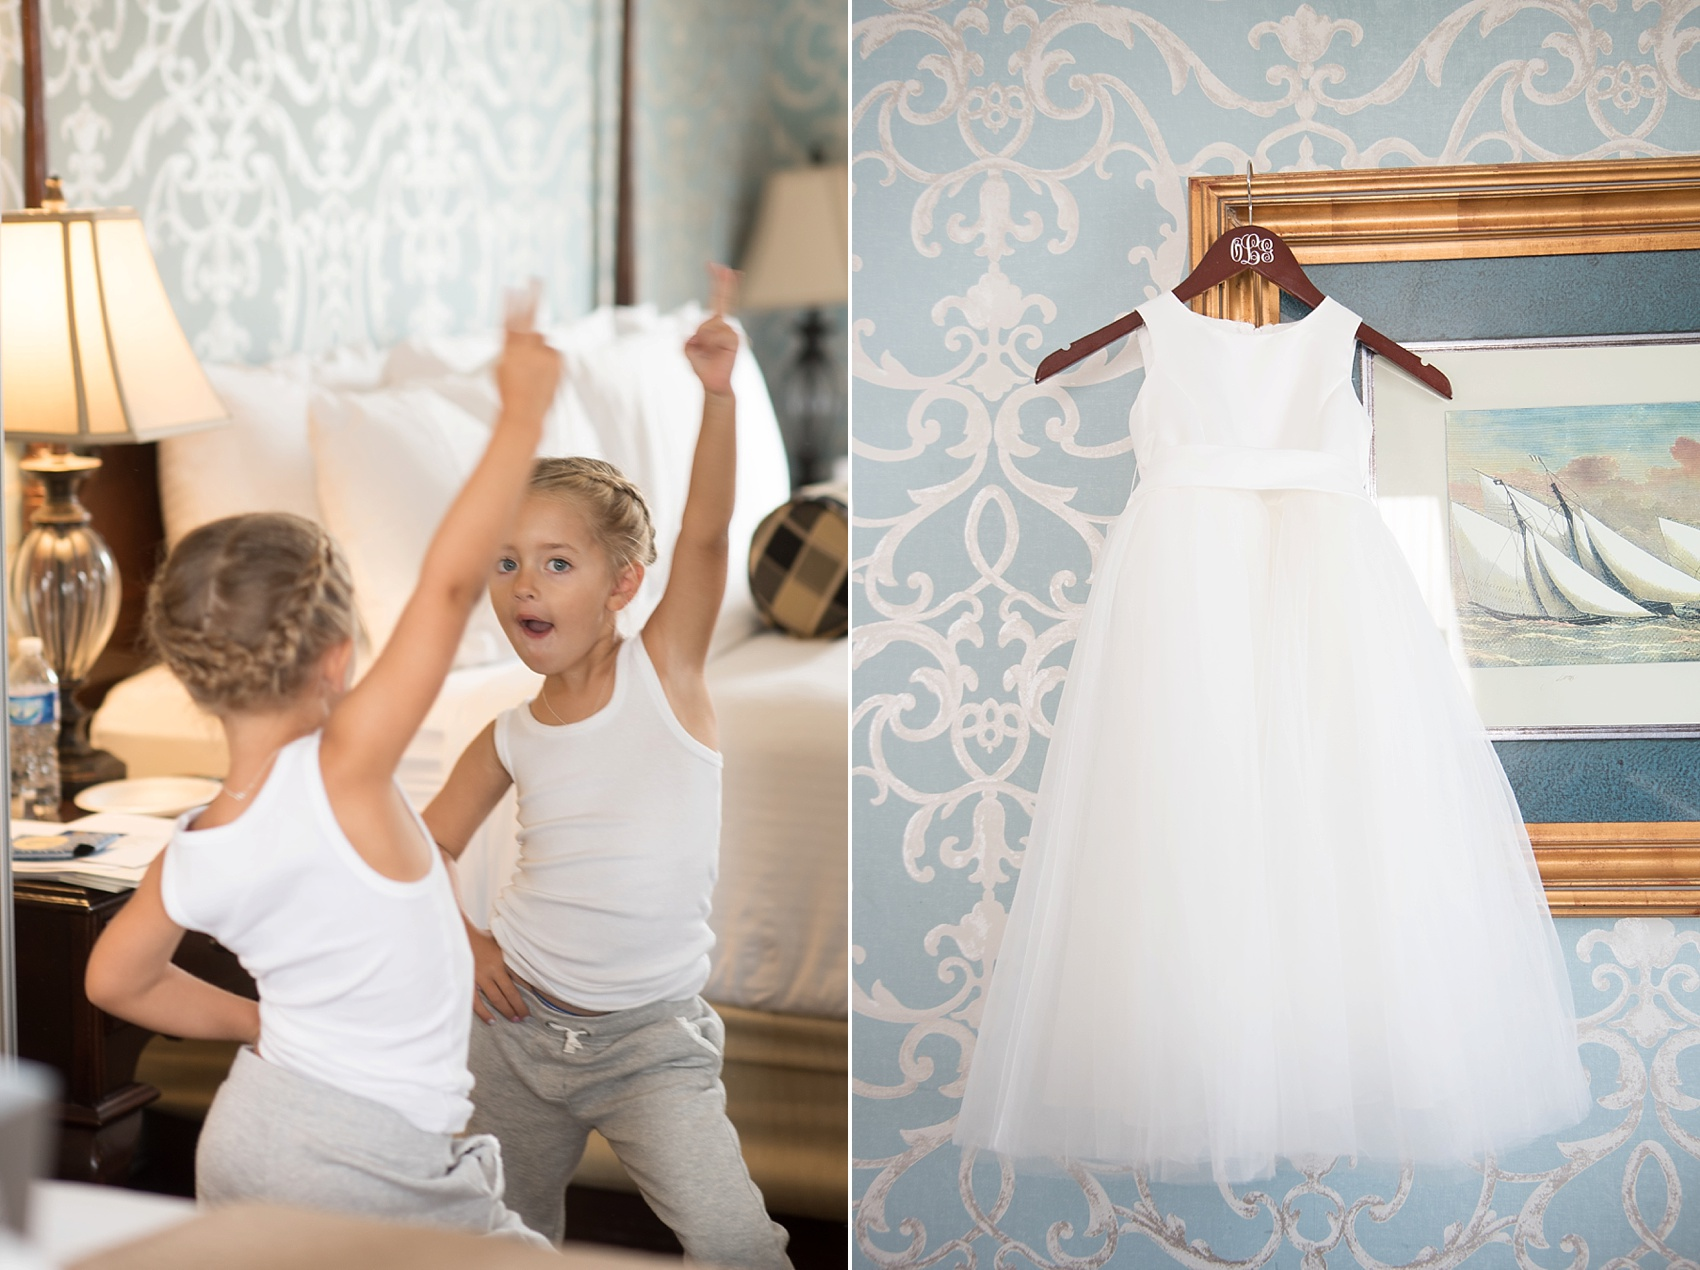 Flower girl dress image at the Molly Pitcher Inn. Photo by Mikkel Paige Photography.